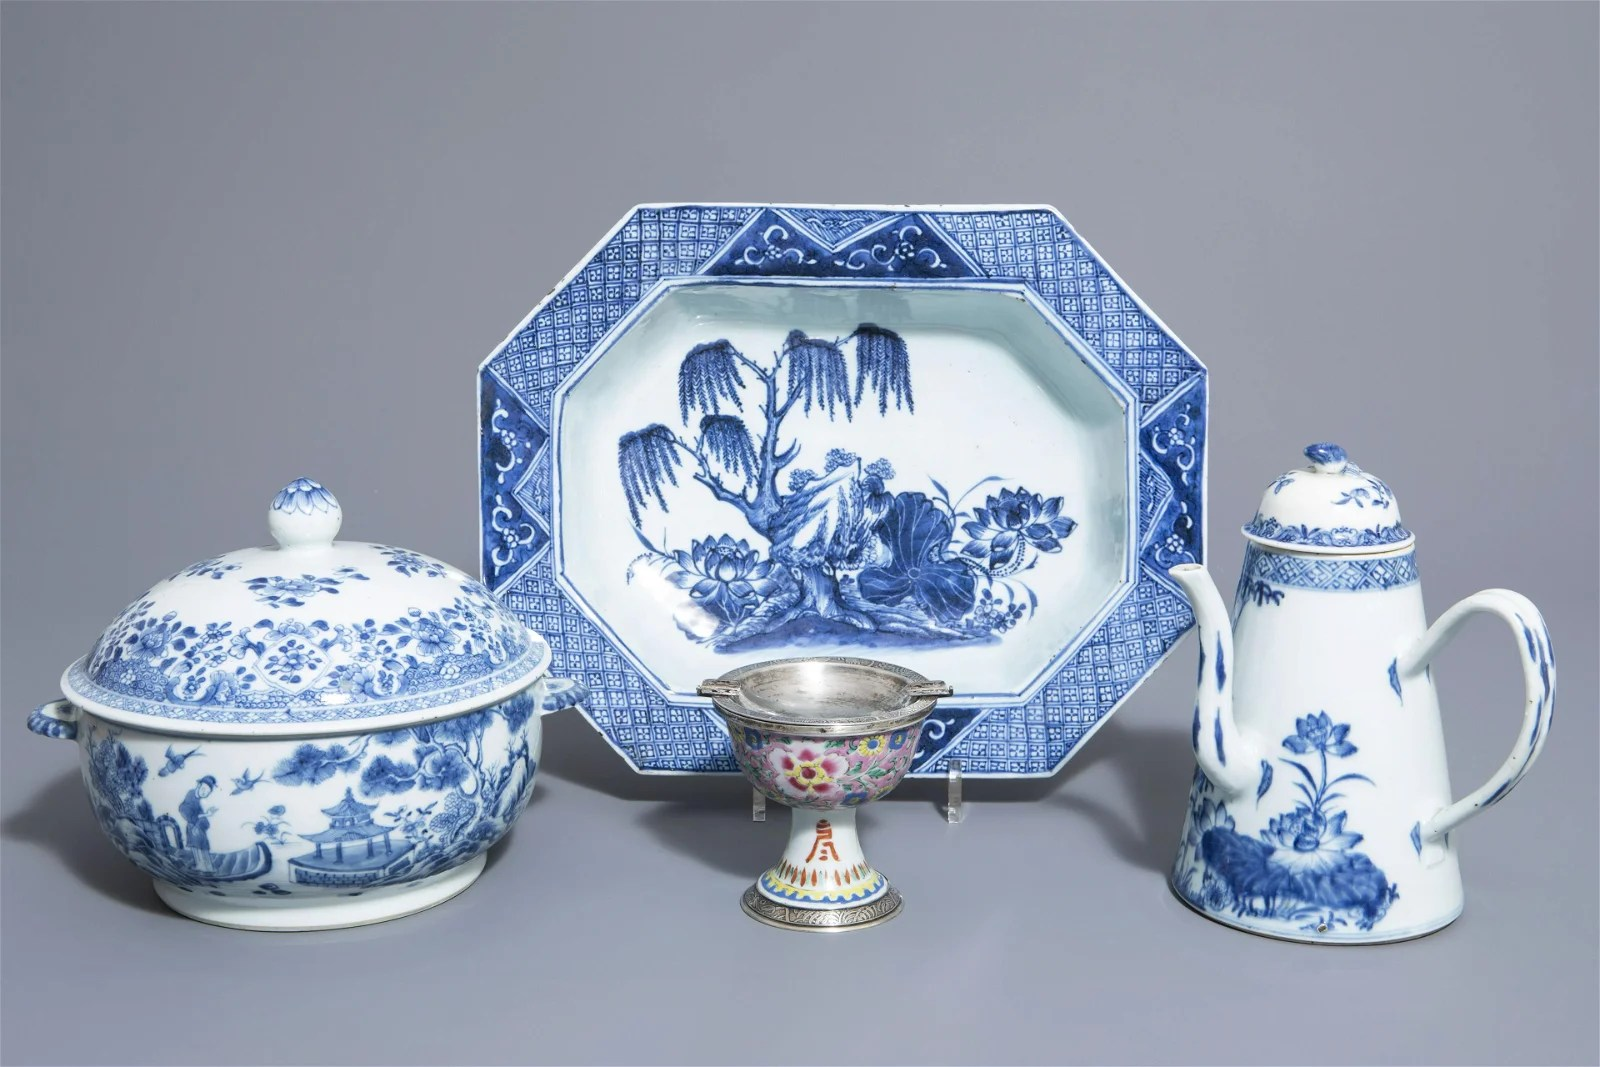 A Chinese blue and white tureen and cover, a deep